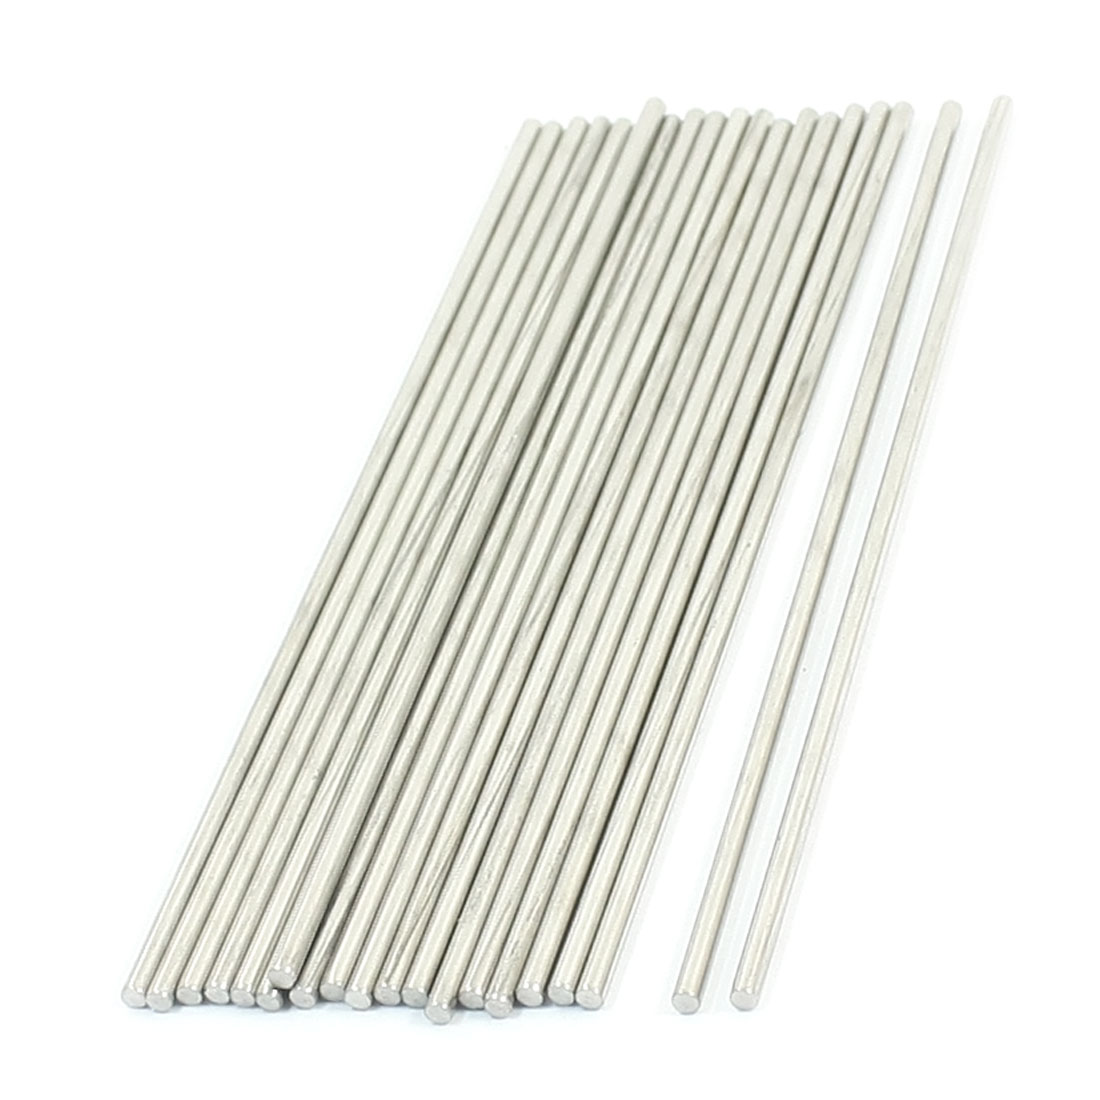 20PCS RC Model Spare Parts Stainless Steel Round Bar Shaft 130mmx2.5mm